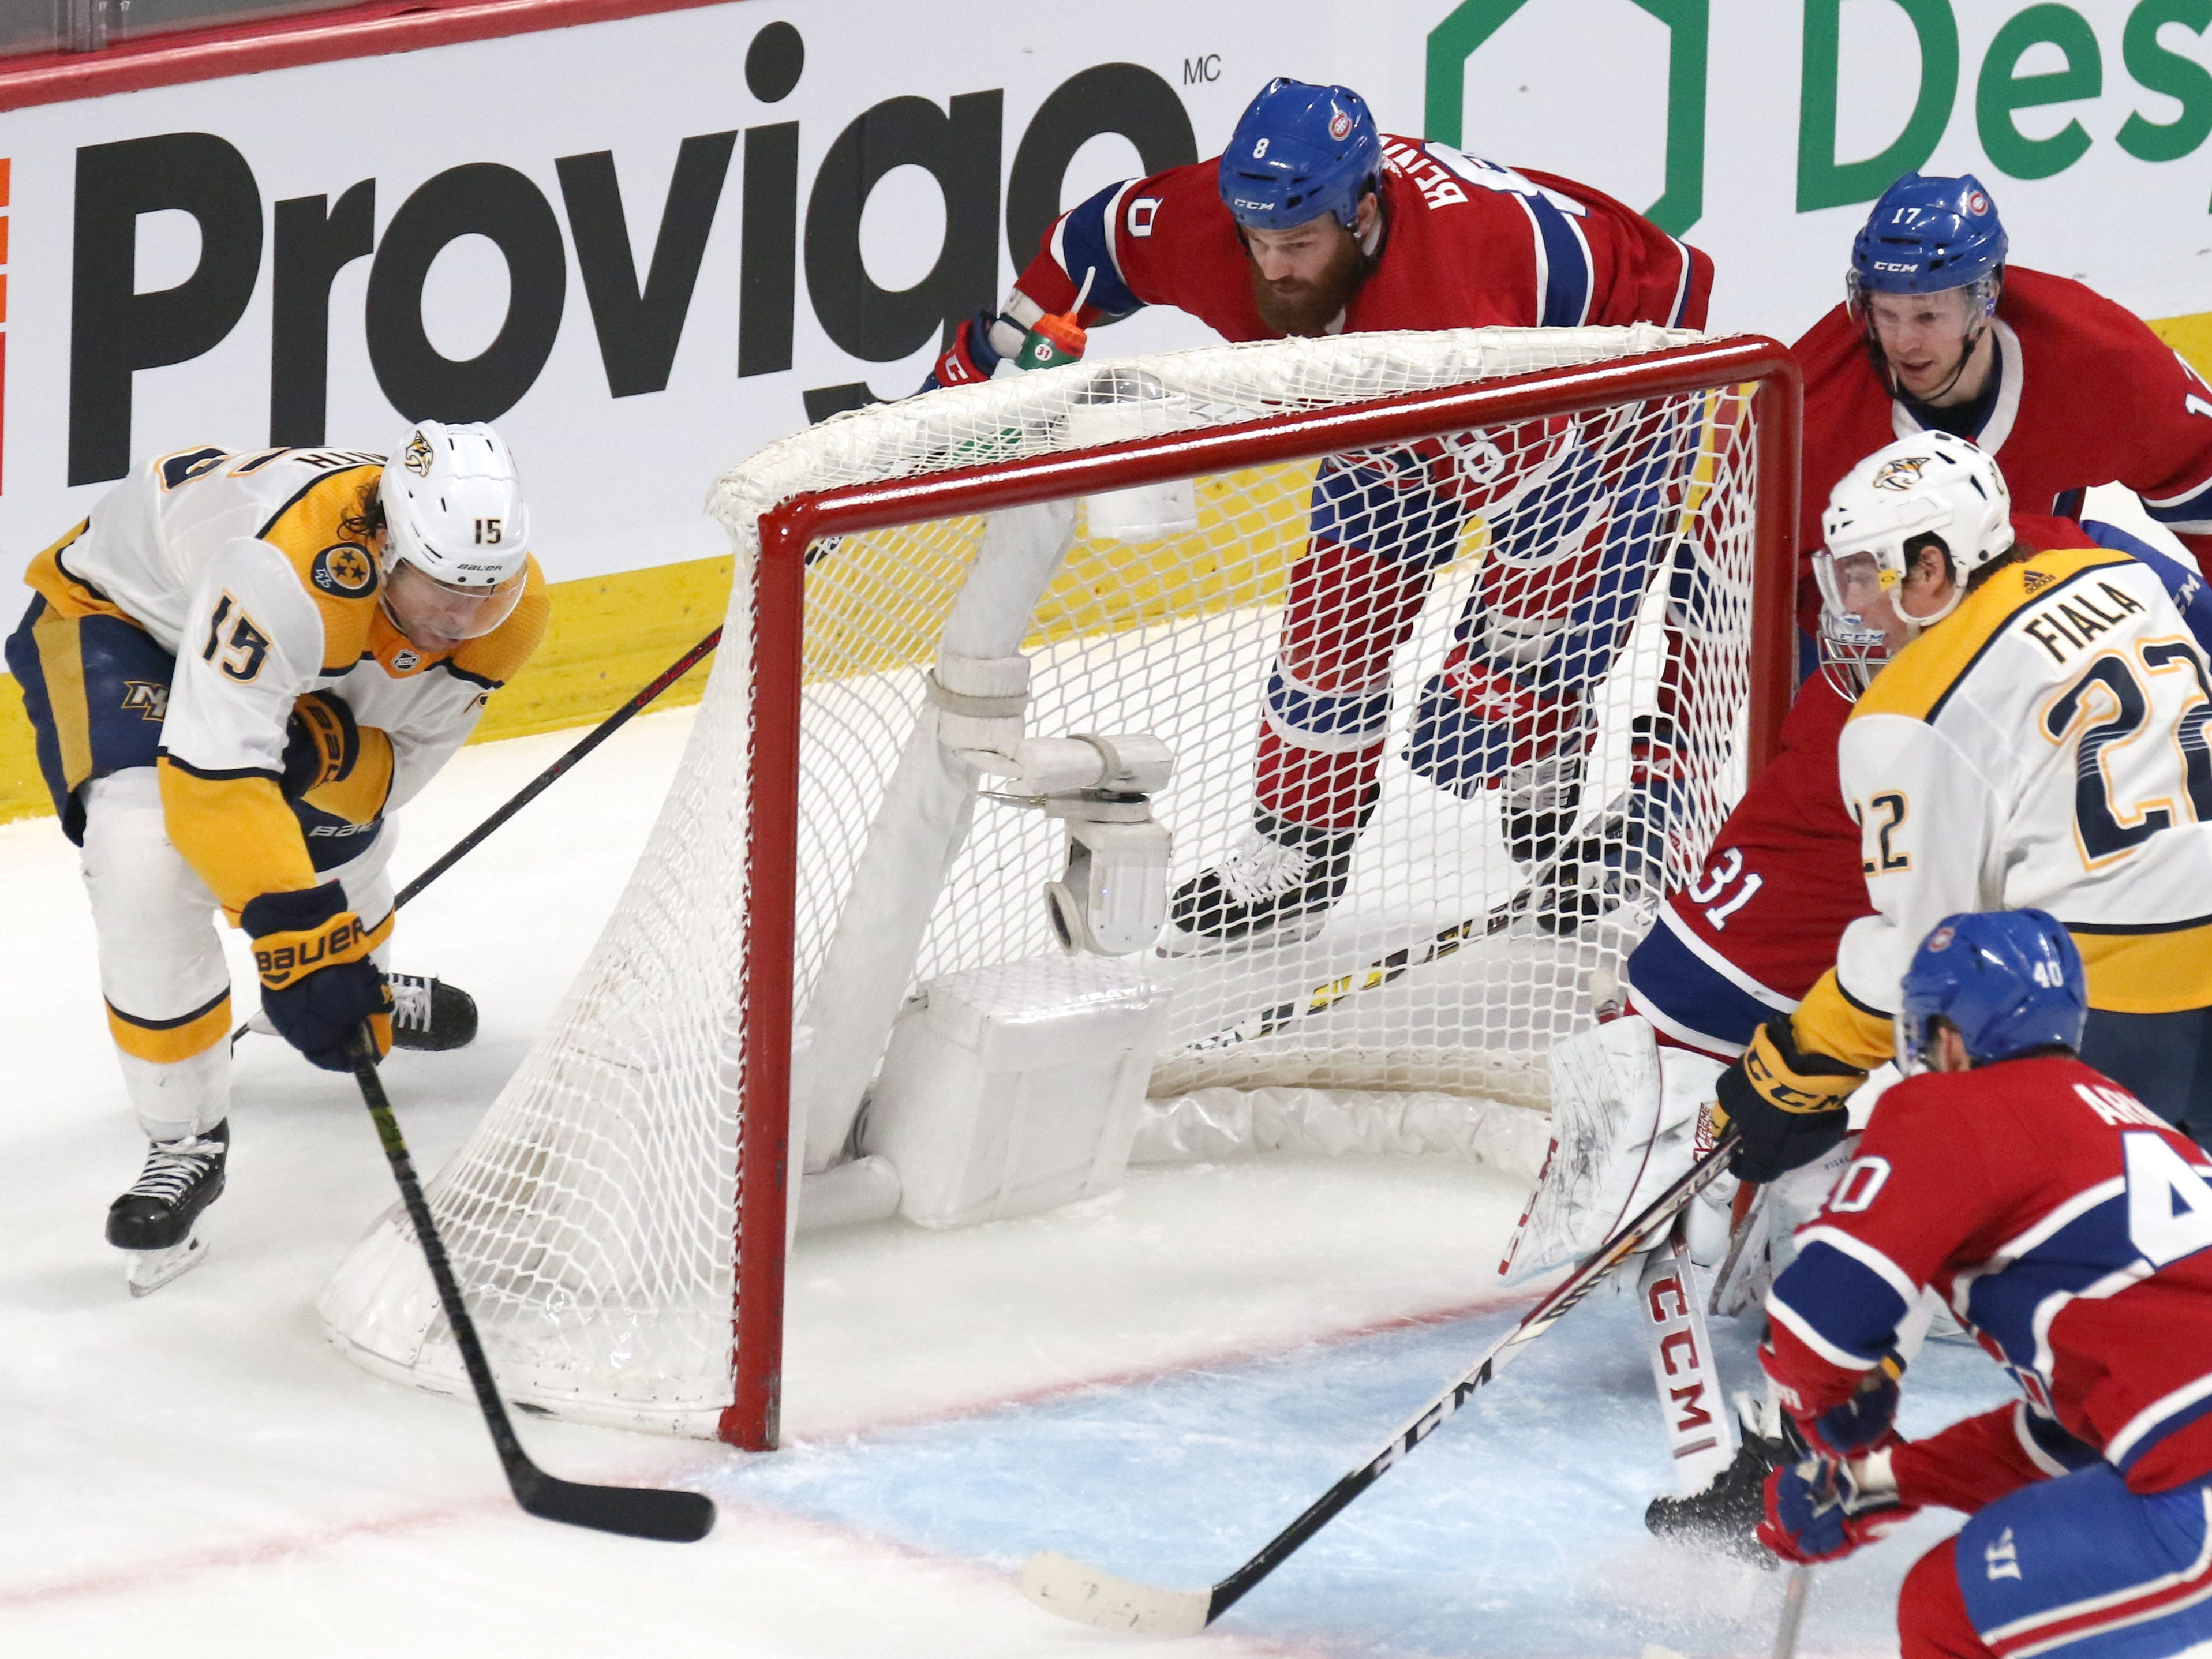 Nashville Predators right wing Craig Smith (15) scores a goal against Montreal Canadiens goaltender Carey Price (31) during the second period at Bell Centre.